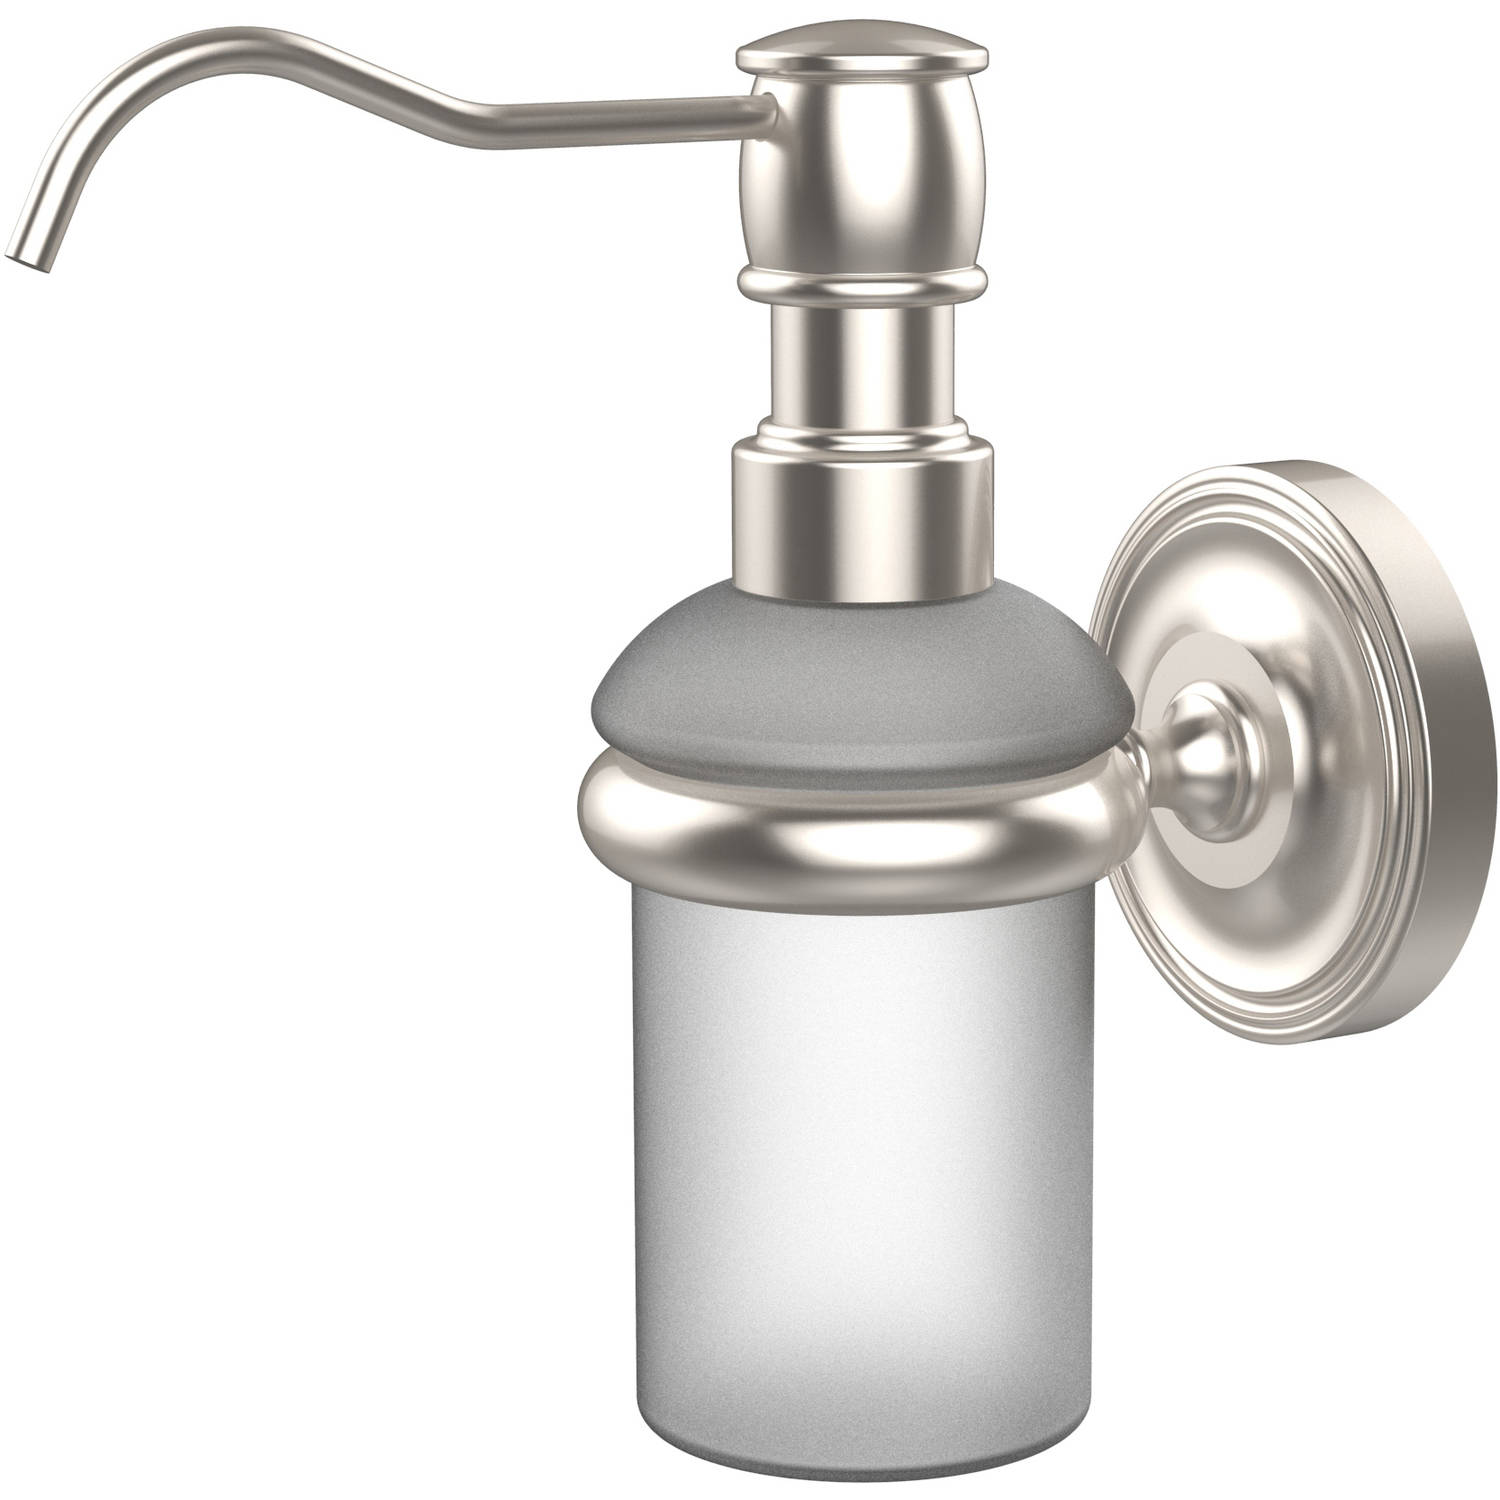 Prestige Regal Collection Wall-Mounted Soap Dispenser (Build to Order)